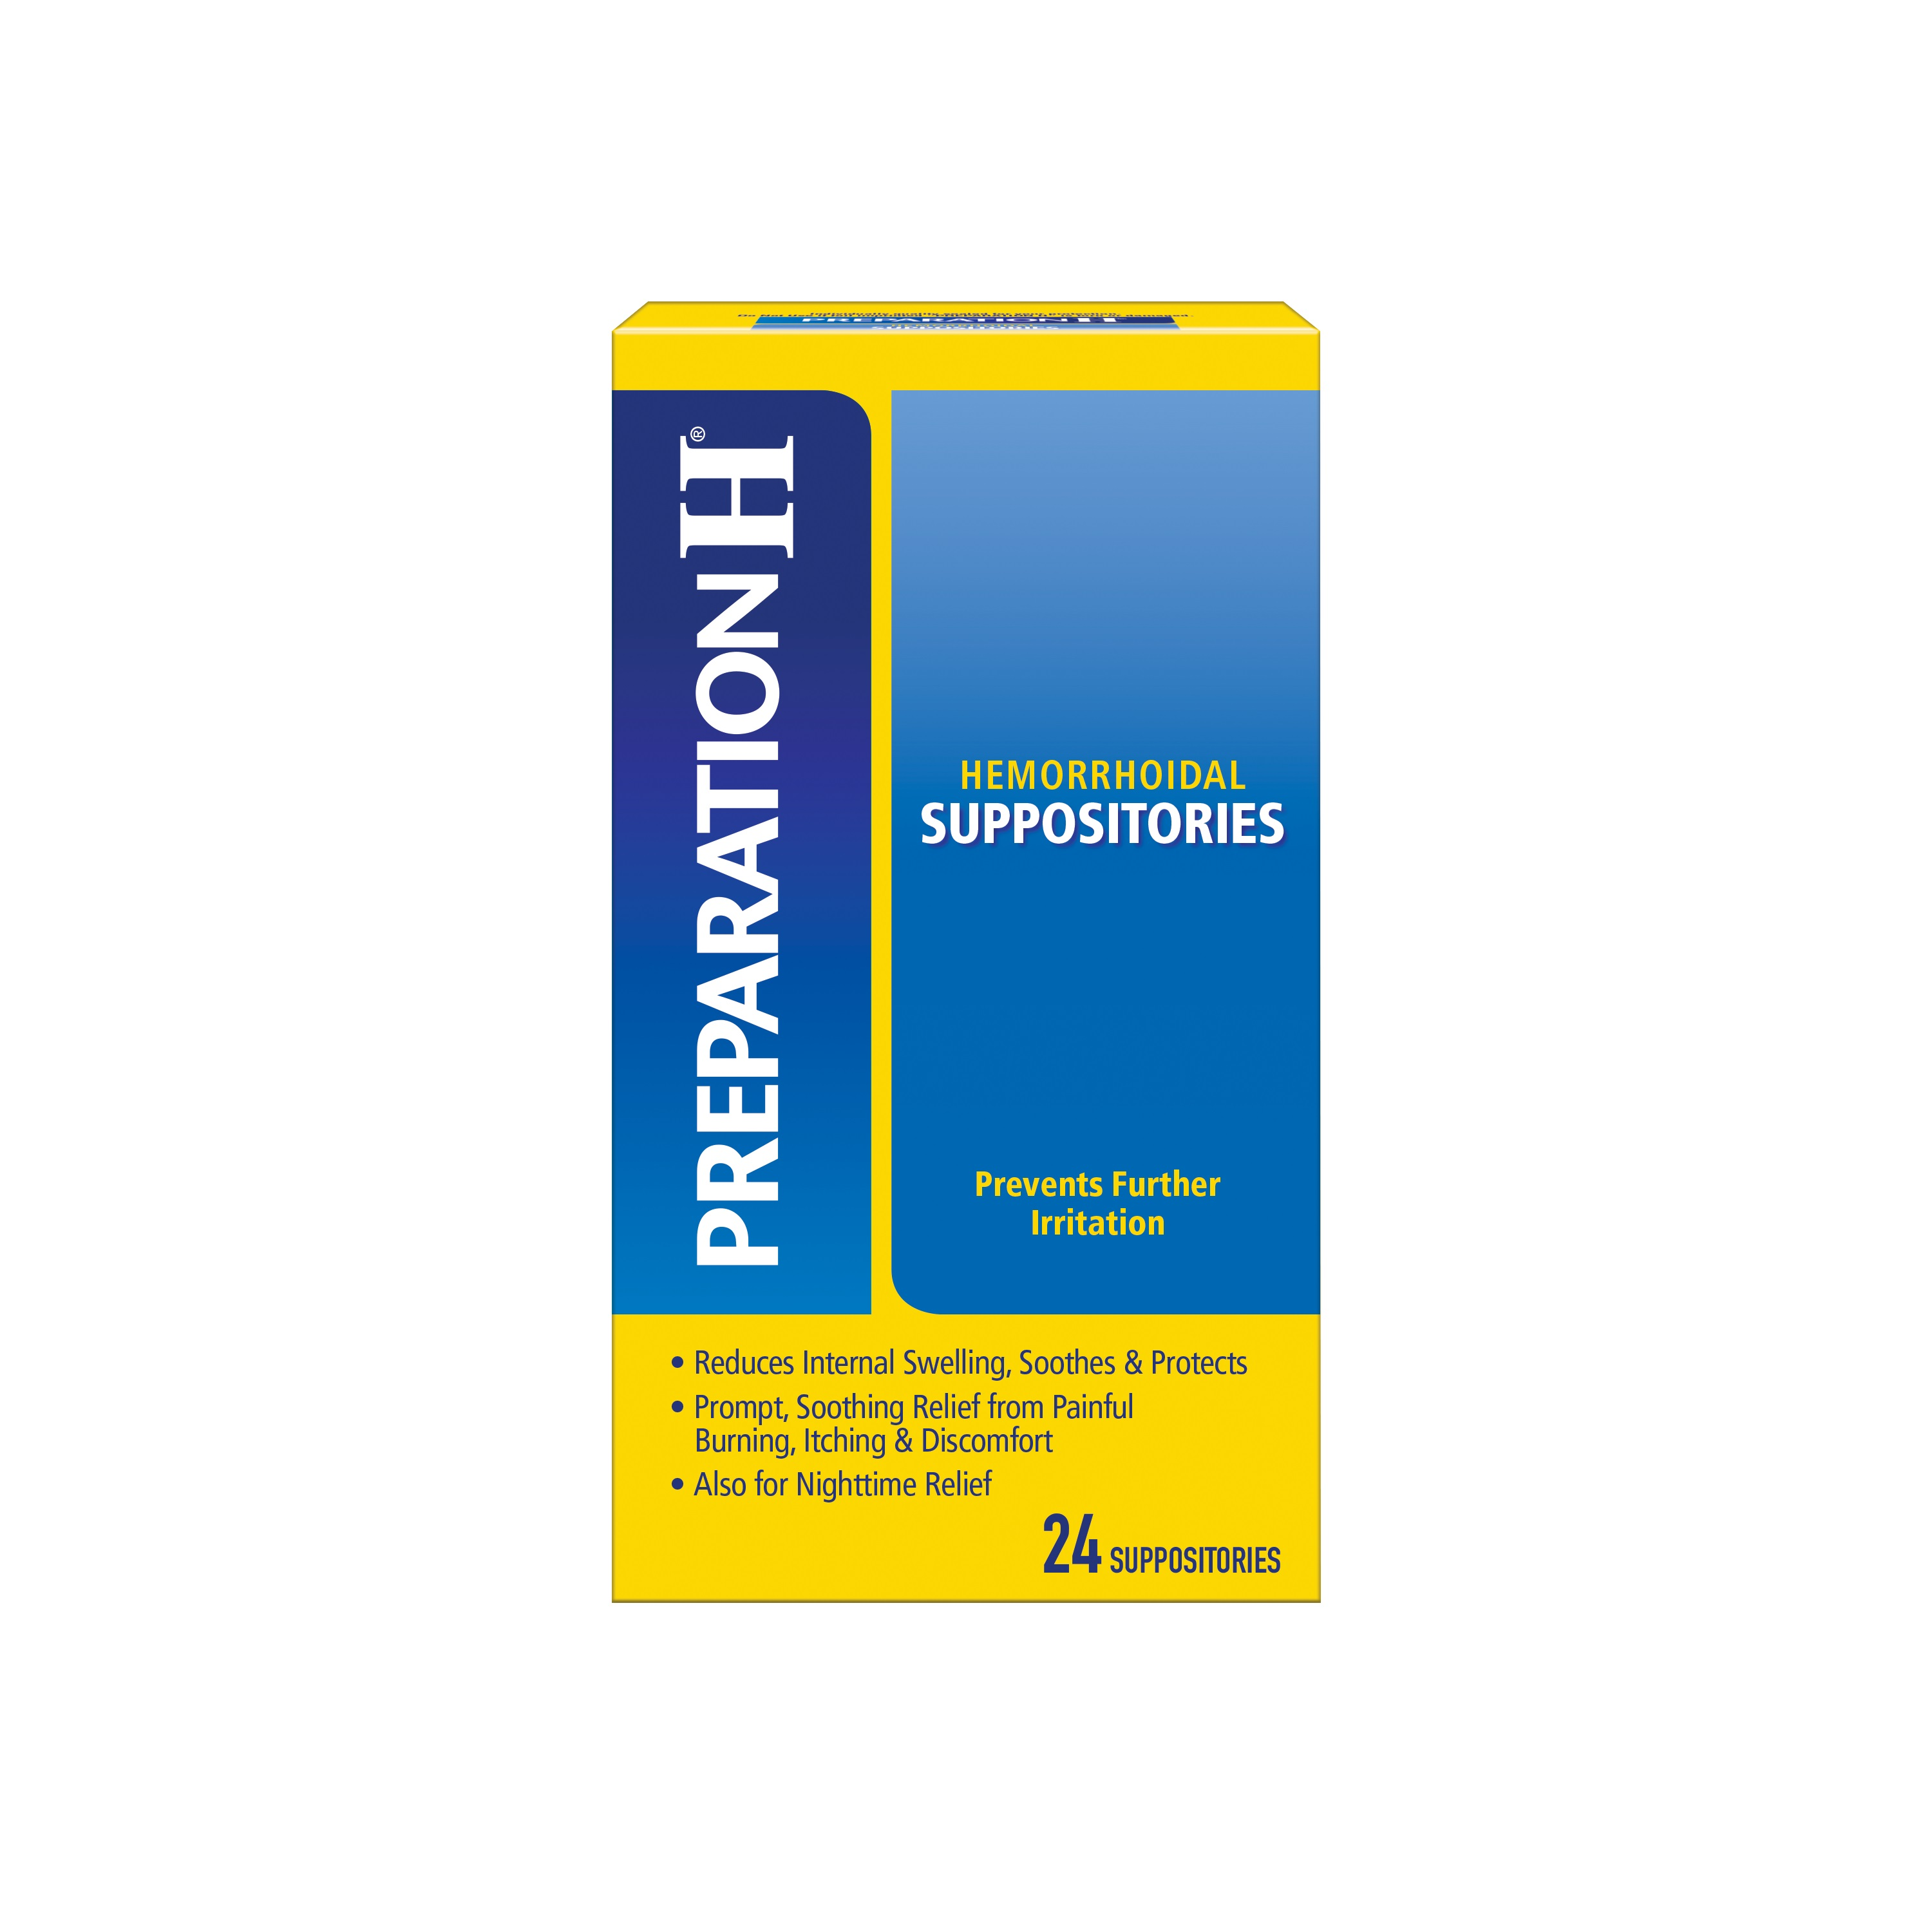 Preparation H Hemorrhoid Symptom Treatment Suppositories, Burning, Itching and Discomfort Relief 24 Count